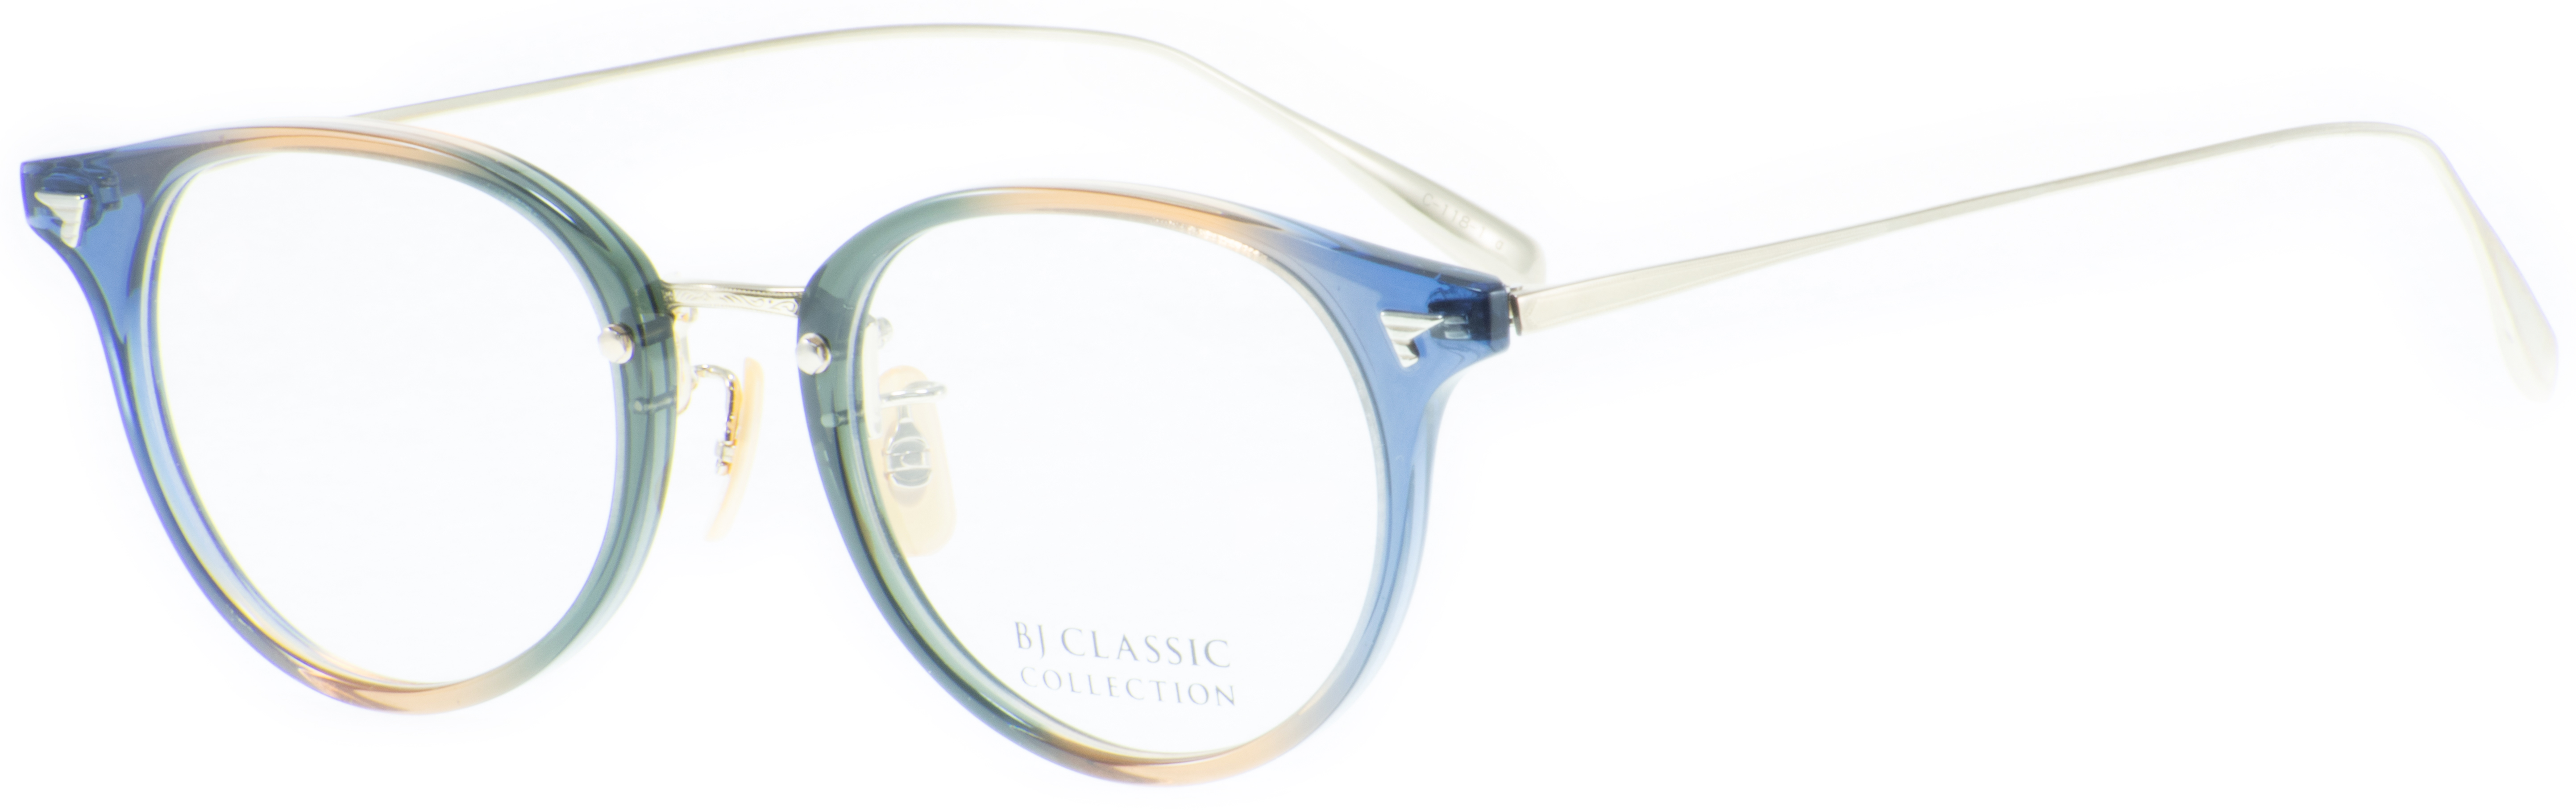 BJ CLASSIC COLLECTION COM-510NNT 118-1 1070213